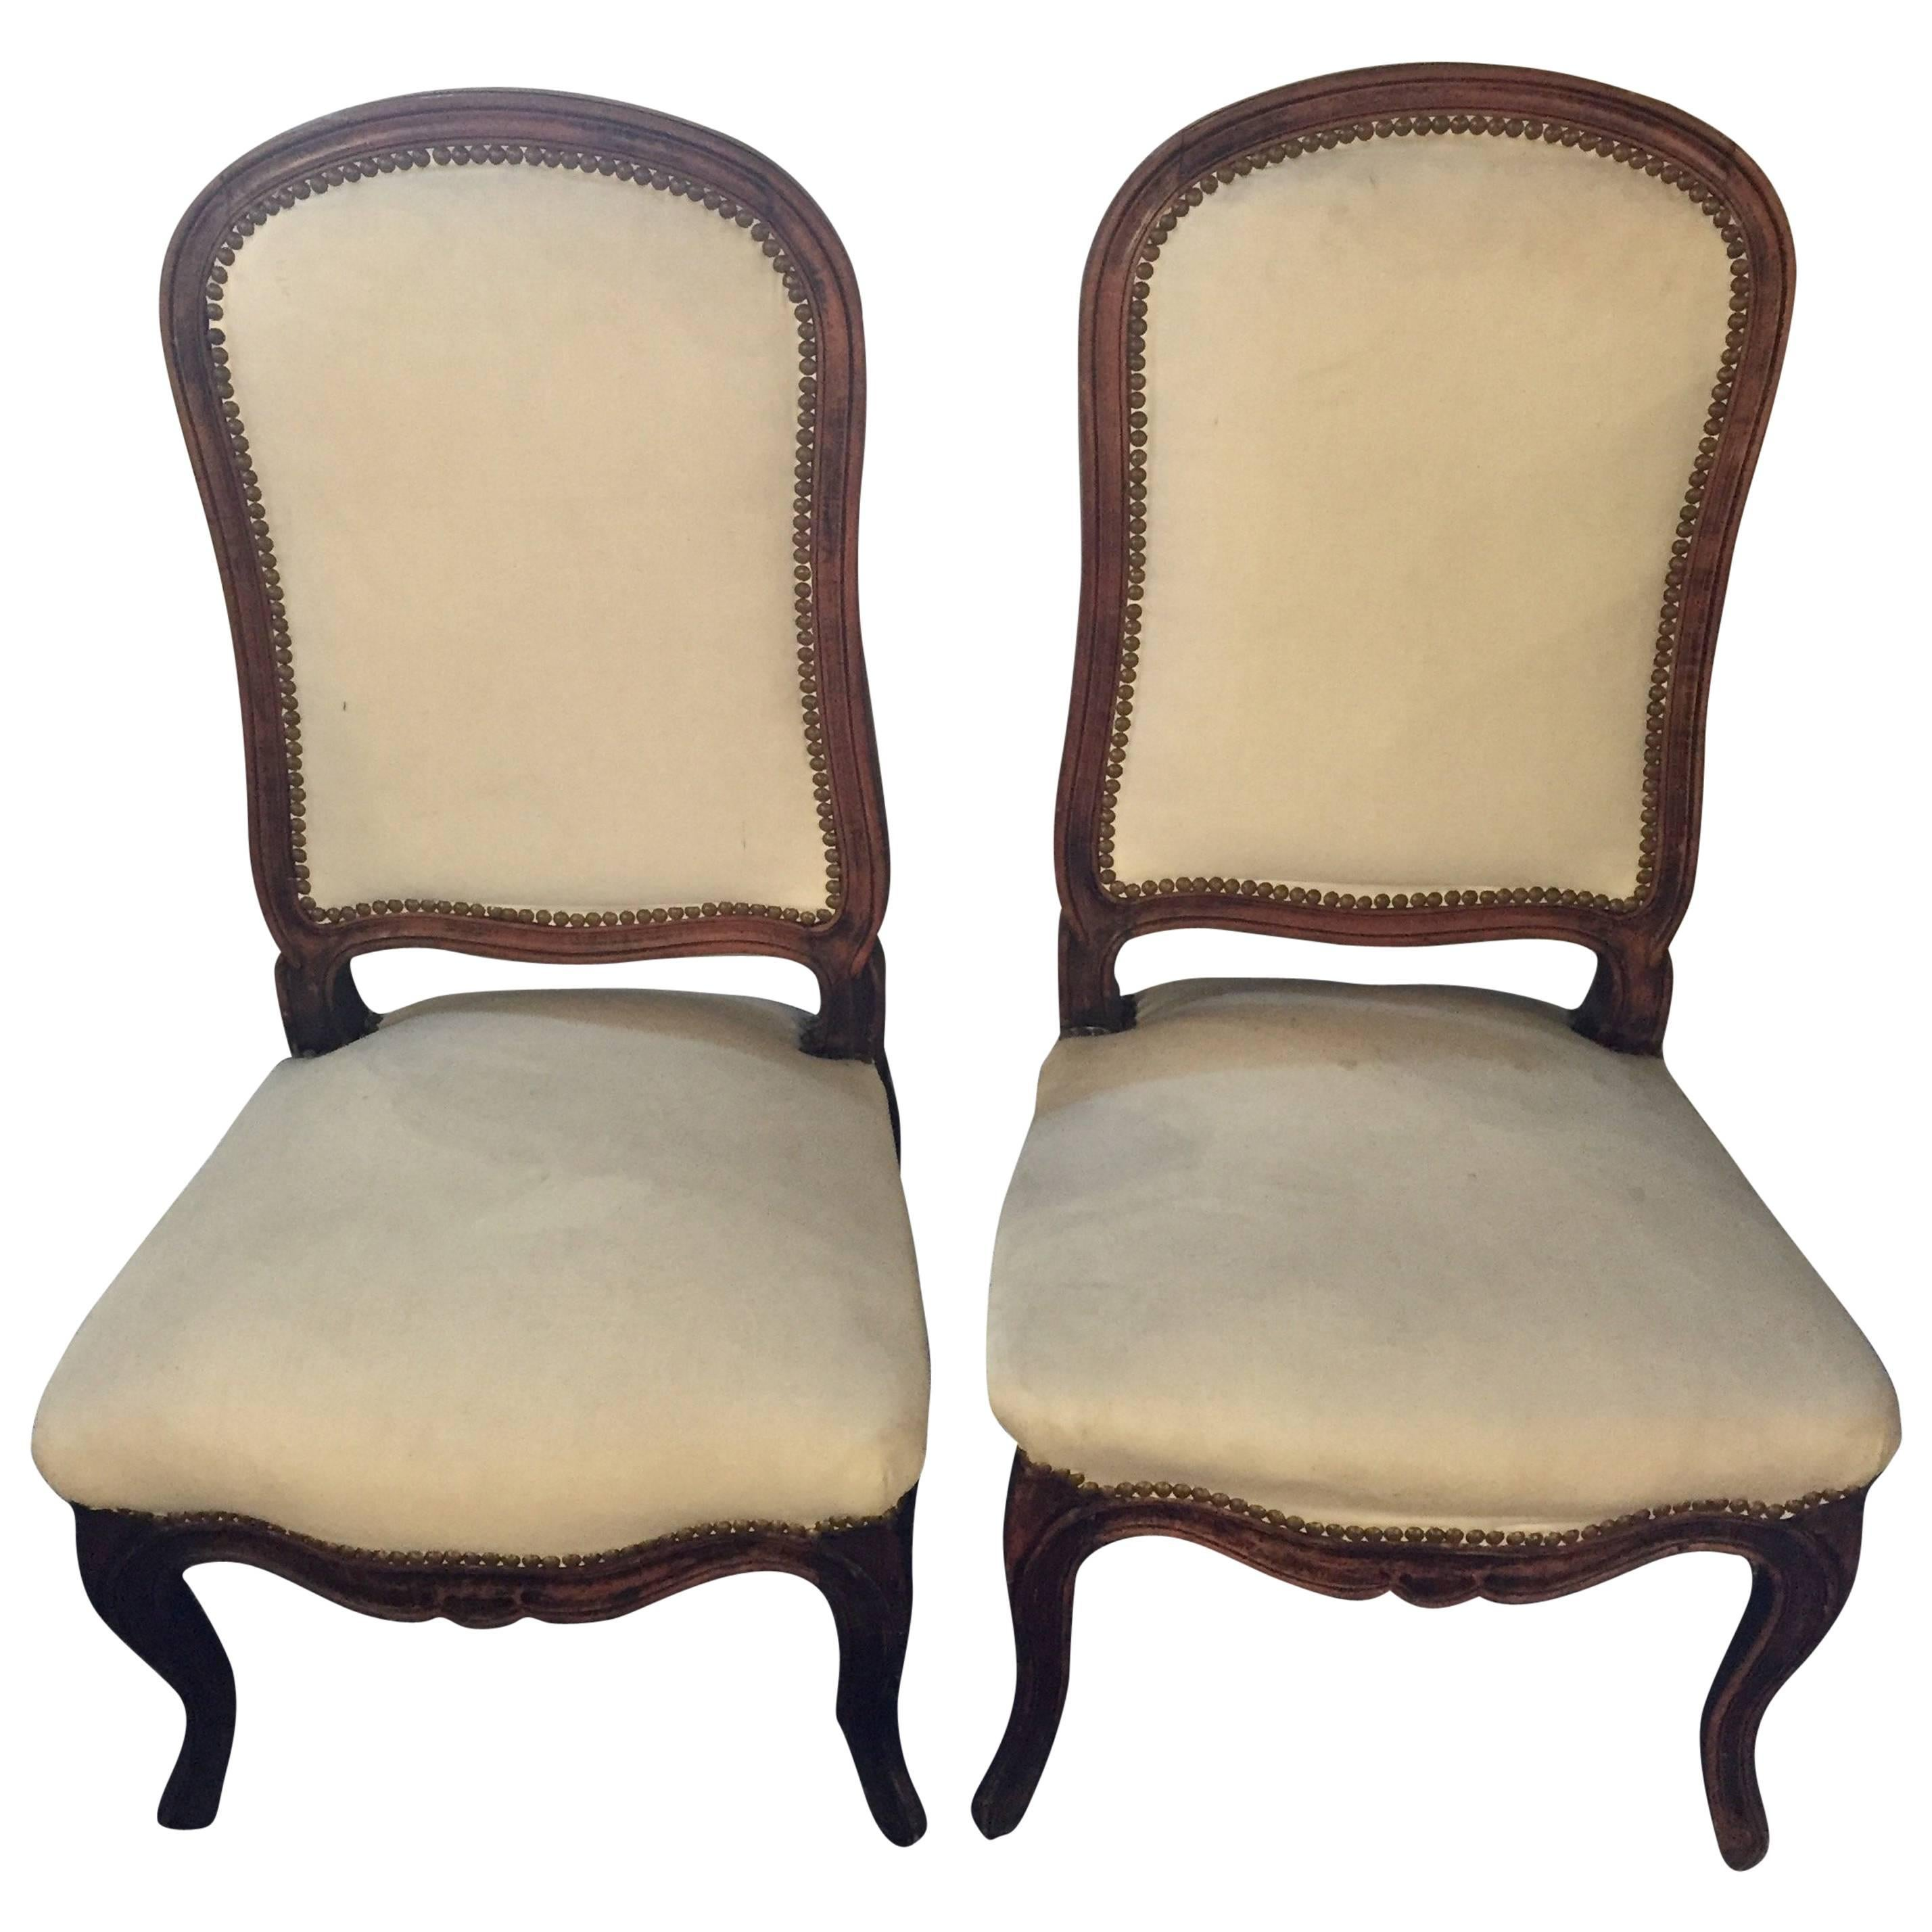 Pair of Louis XV Style Maison Jansen Attributed Boudoir/Slipper or Side Chairs